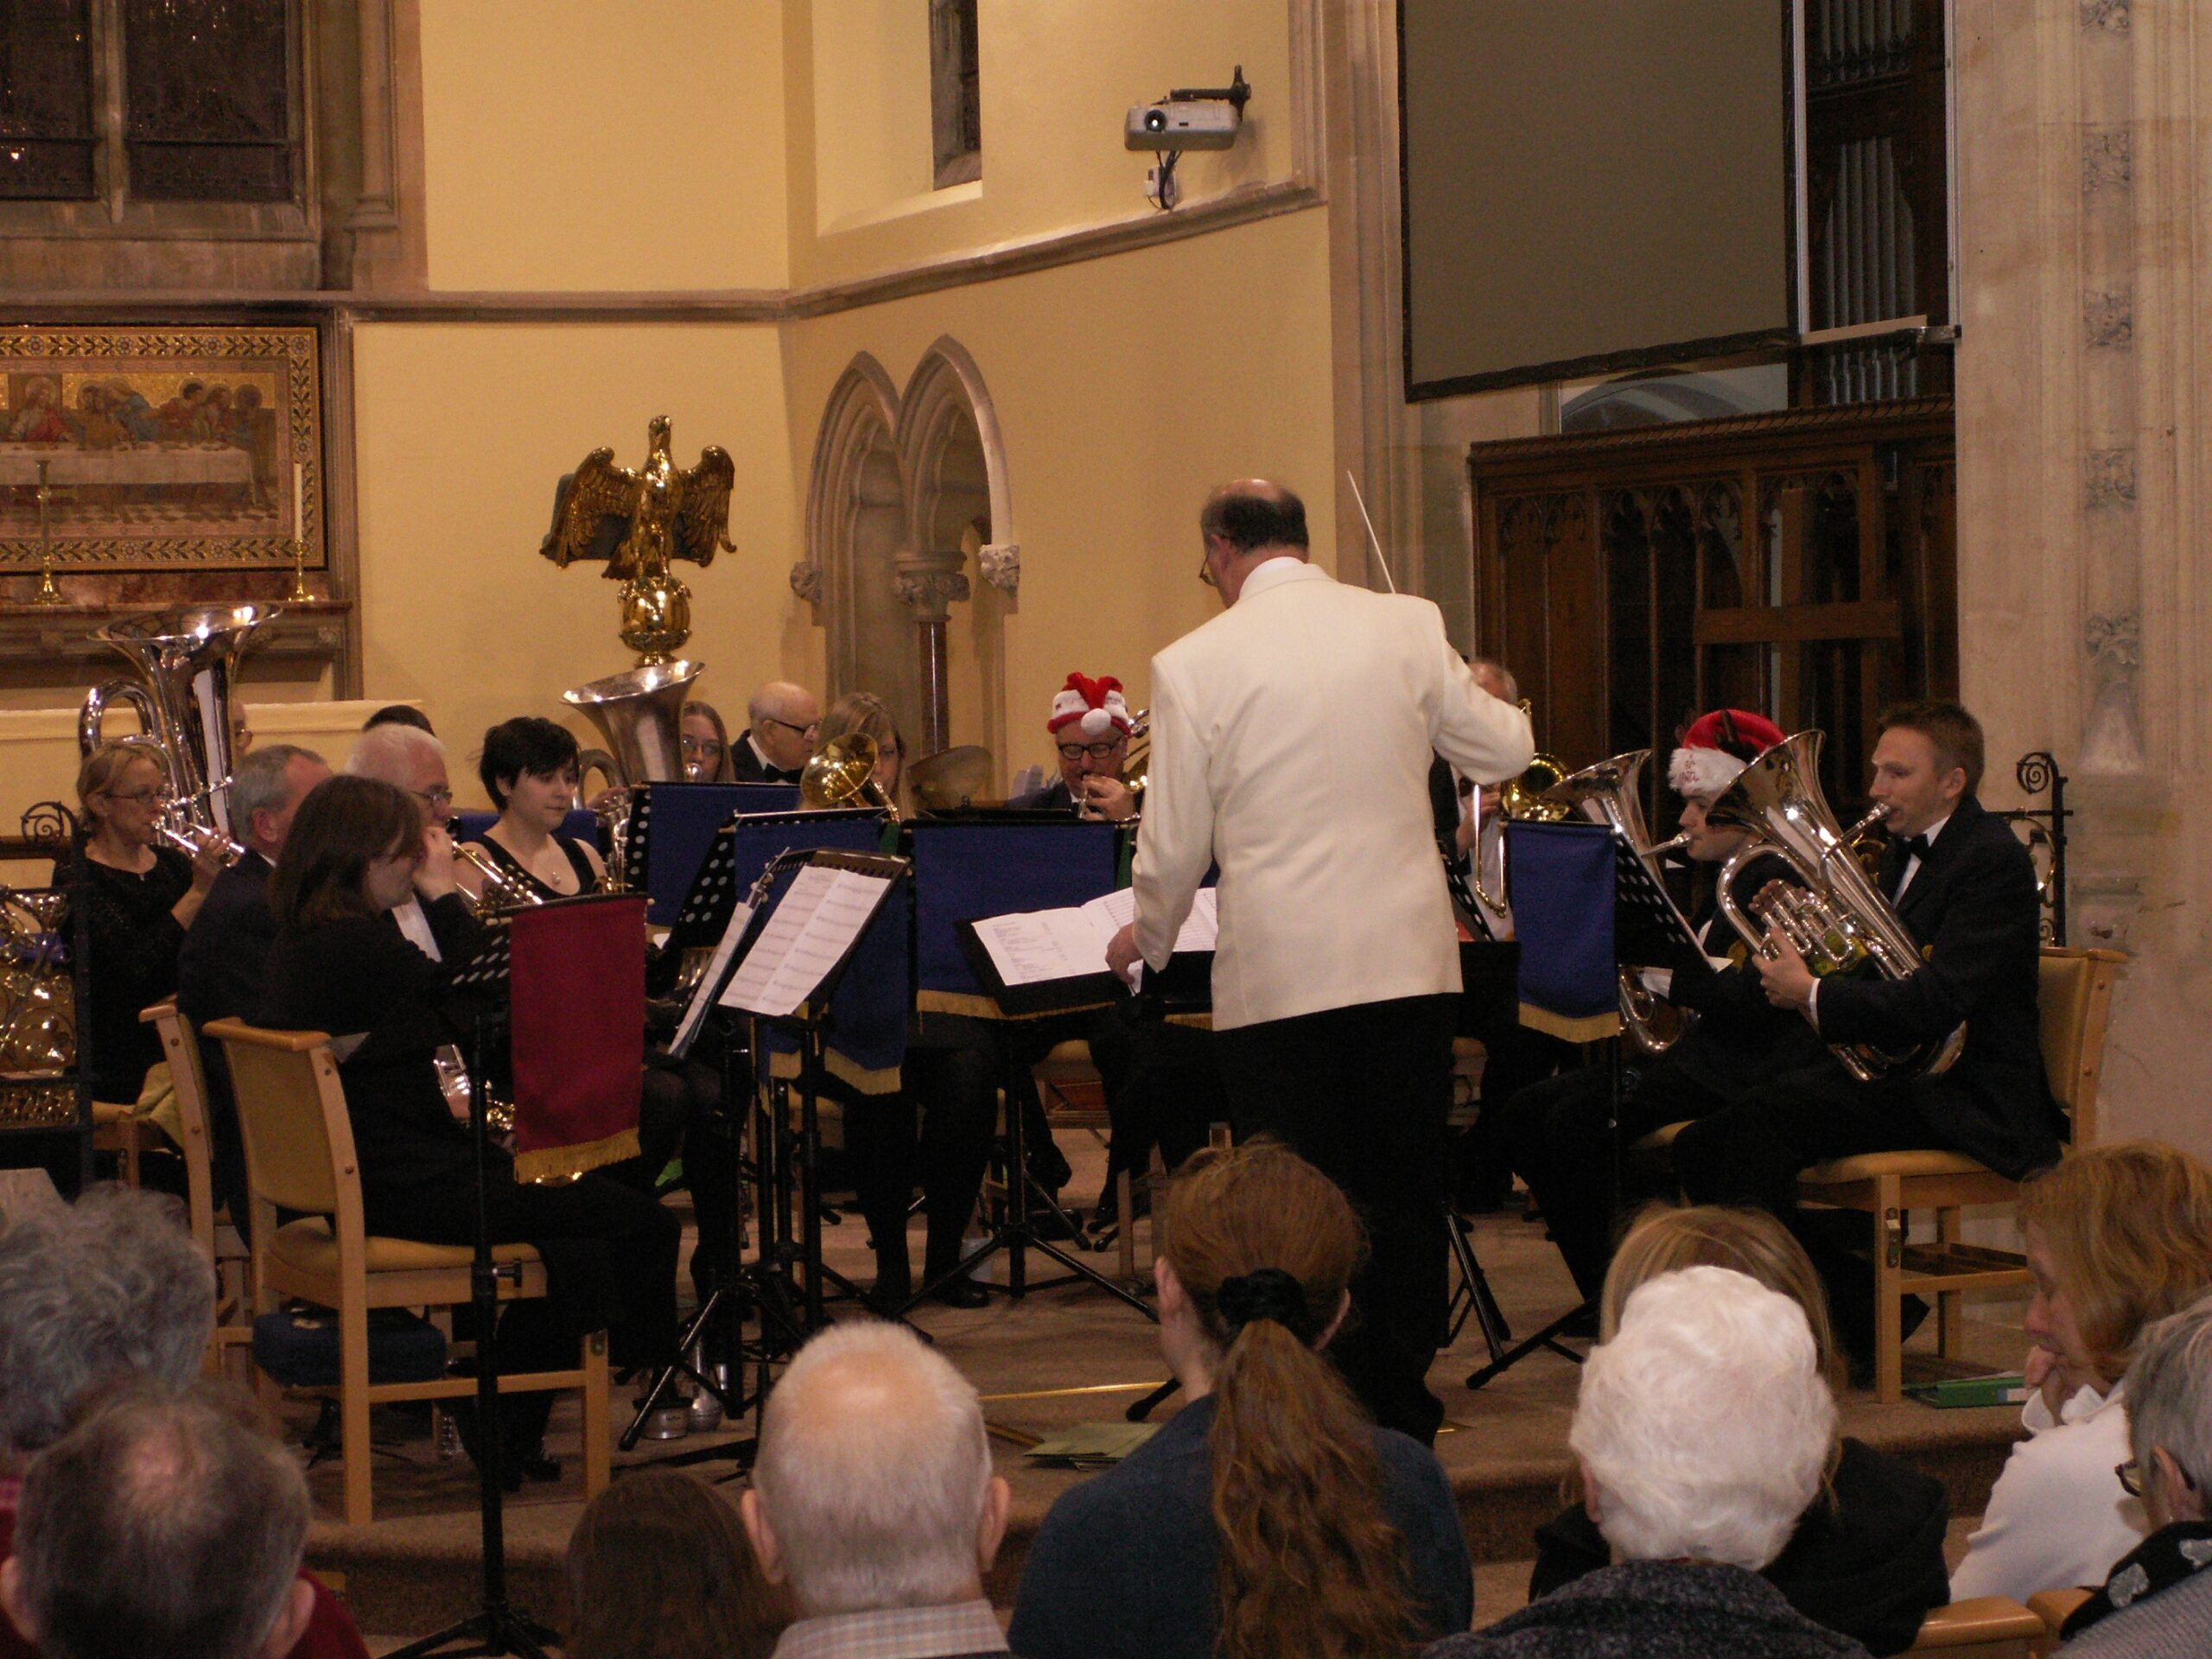 warminster-brass-band-concert-2013